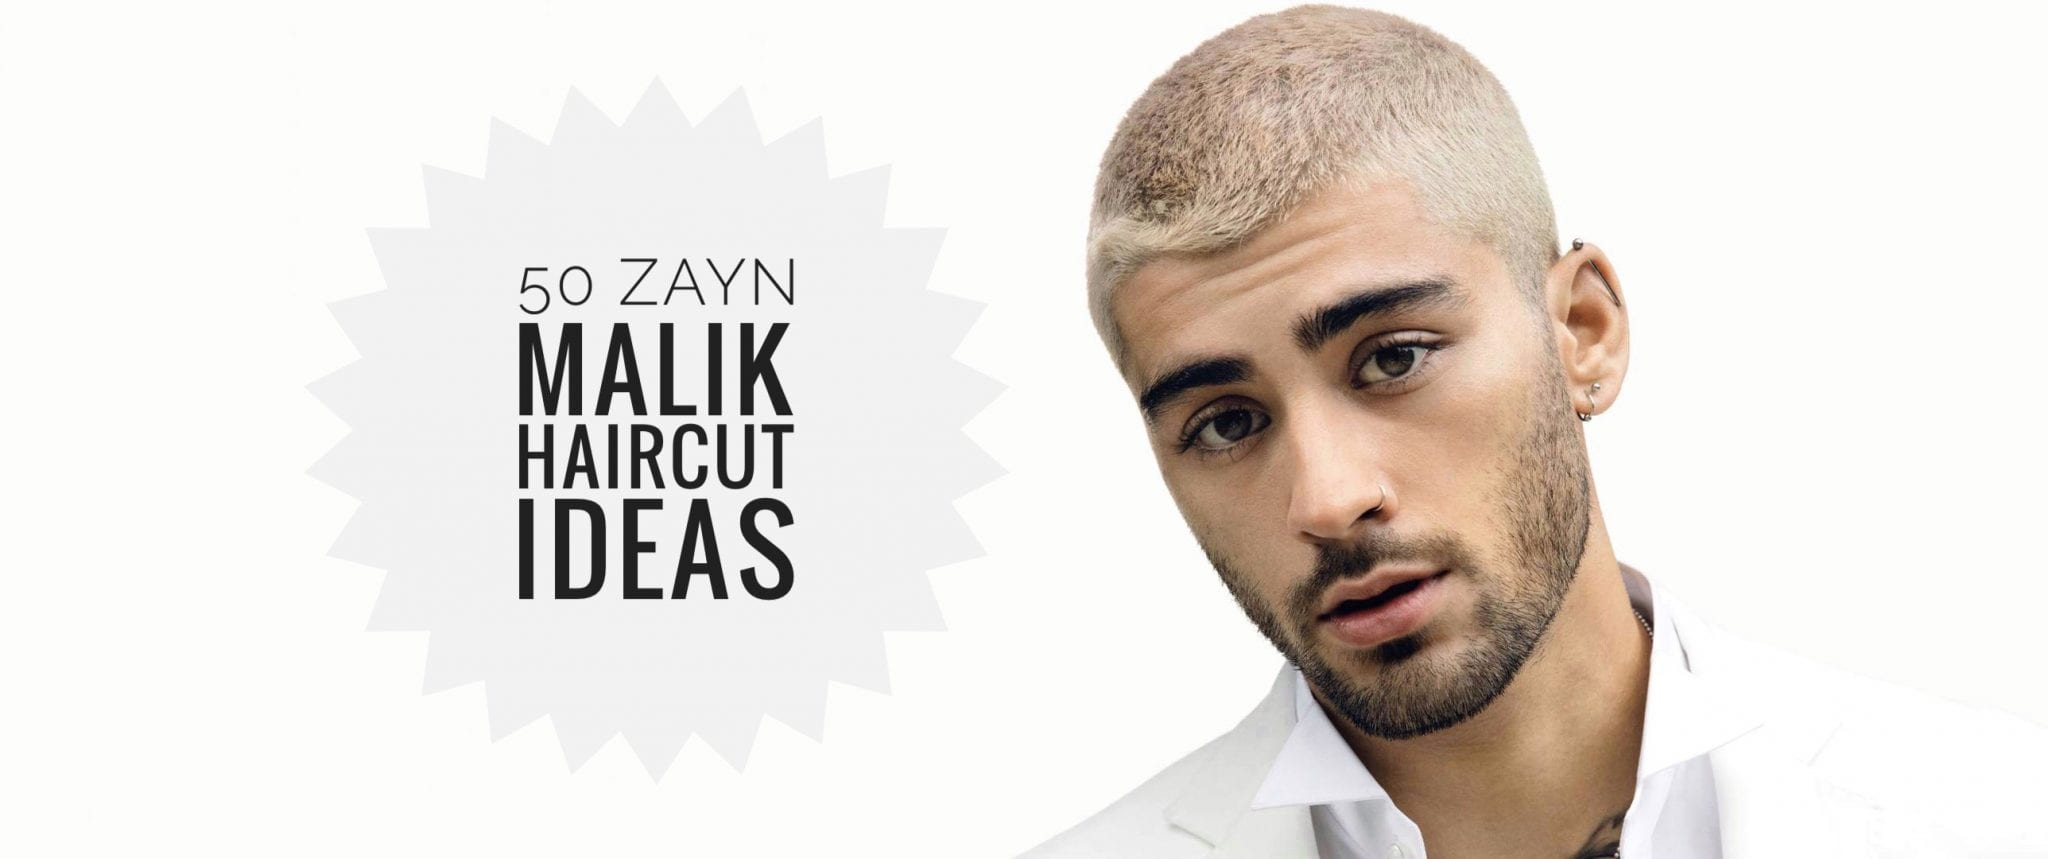 12 Zayn Malik Haircut Ideas to Be an Entertainer - Men Hairstyles